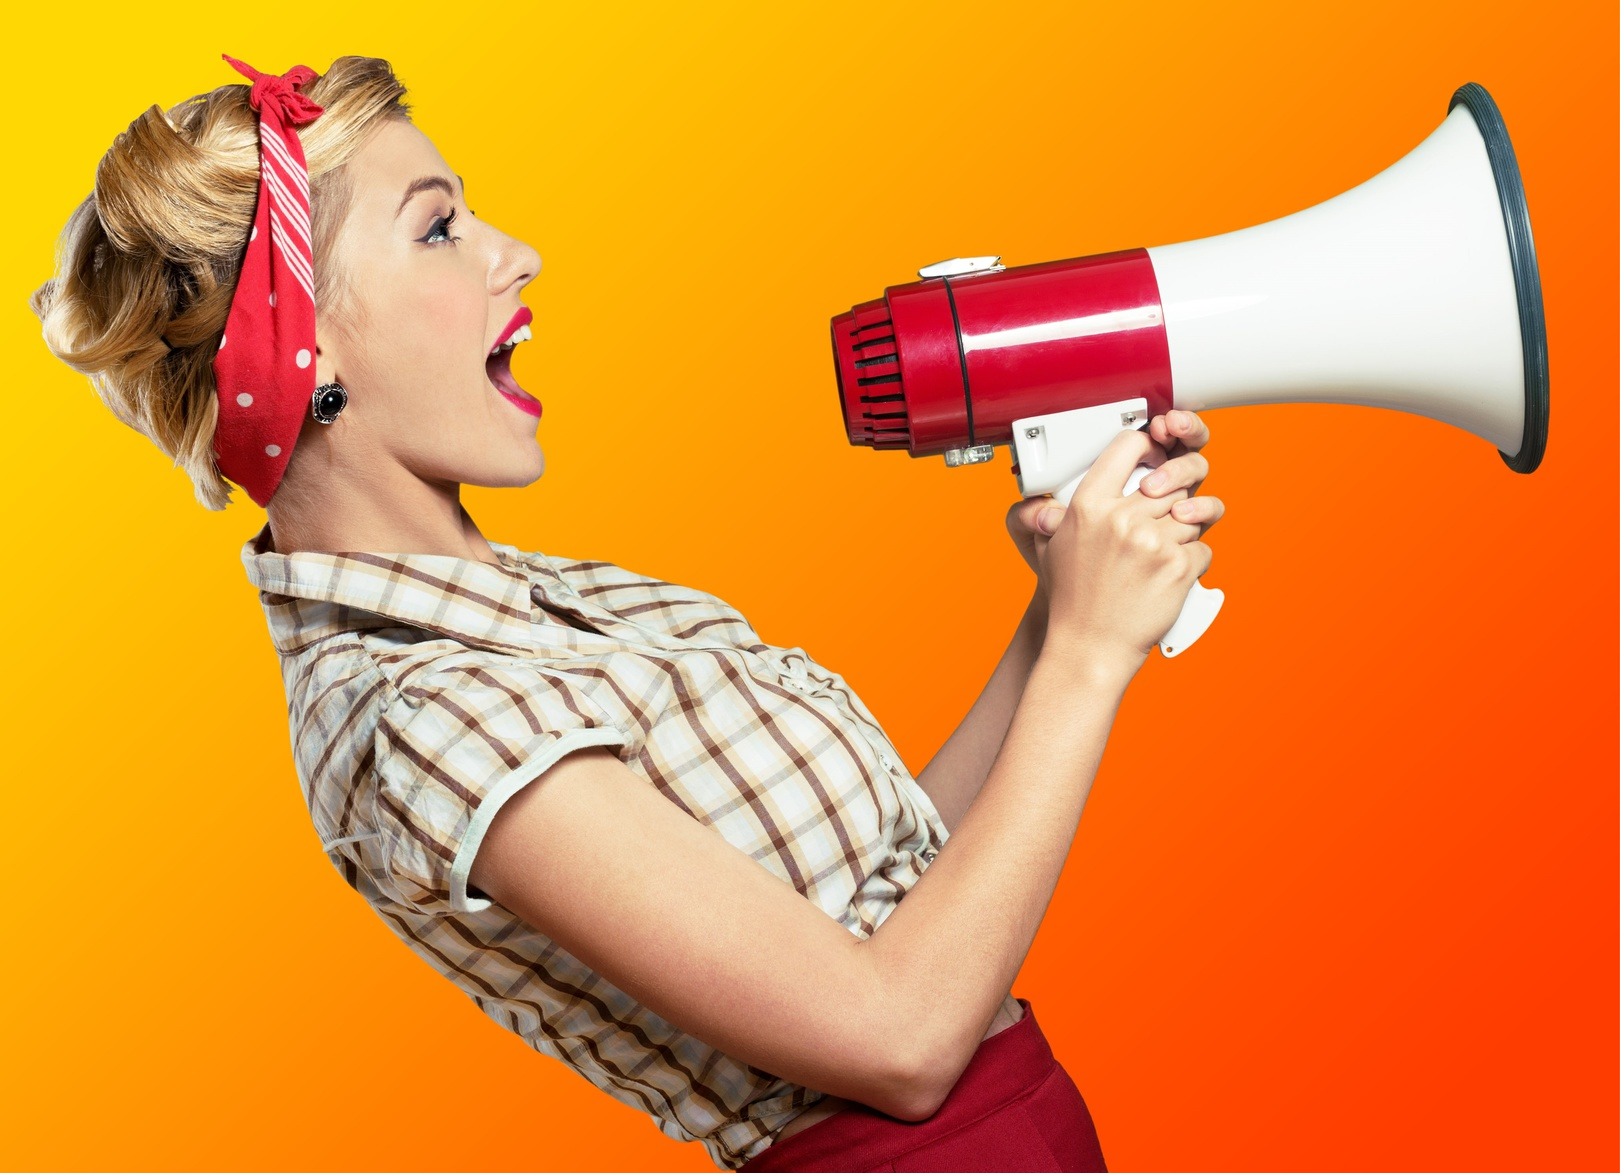 social marketers put down megaphone focus on value